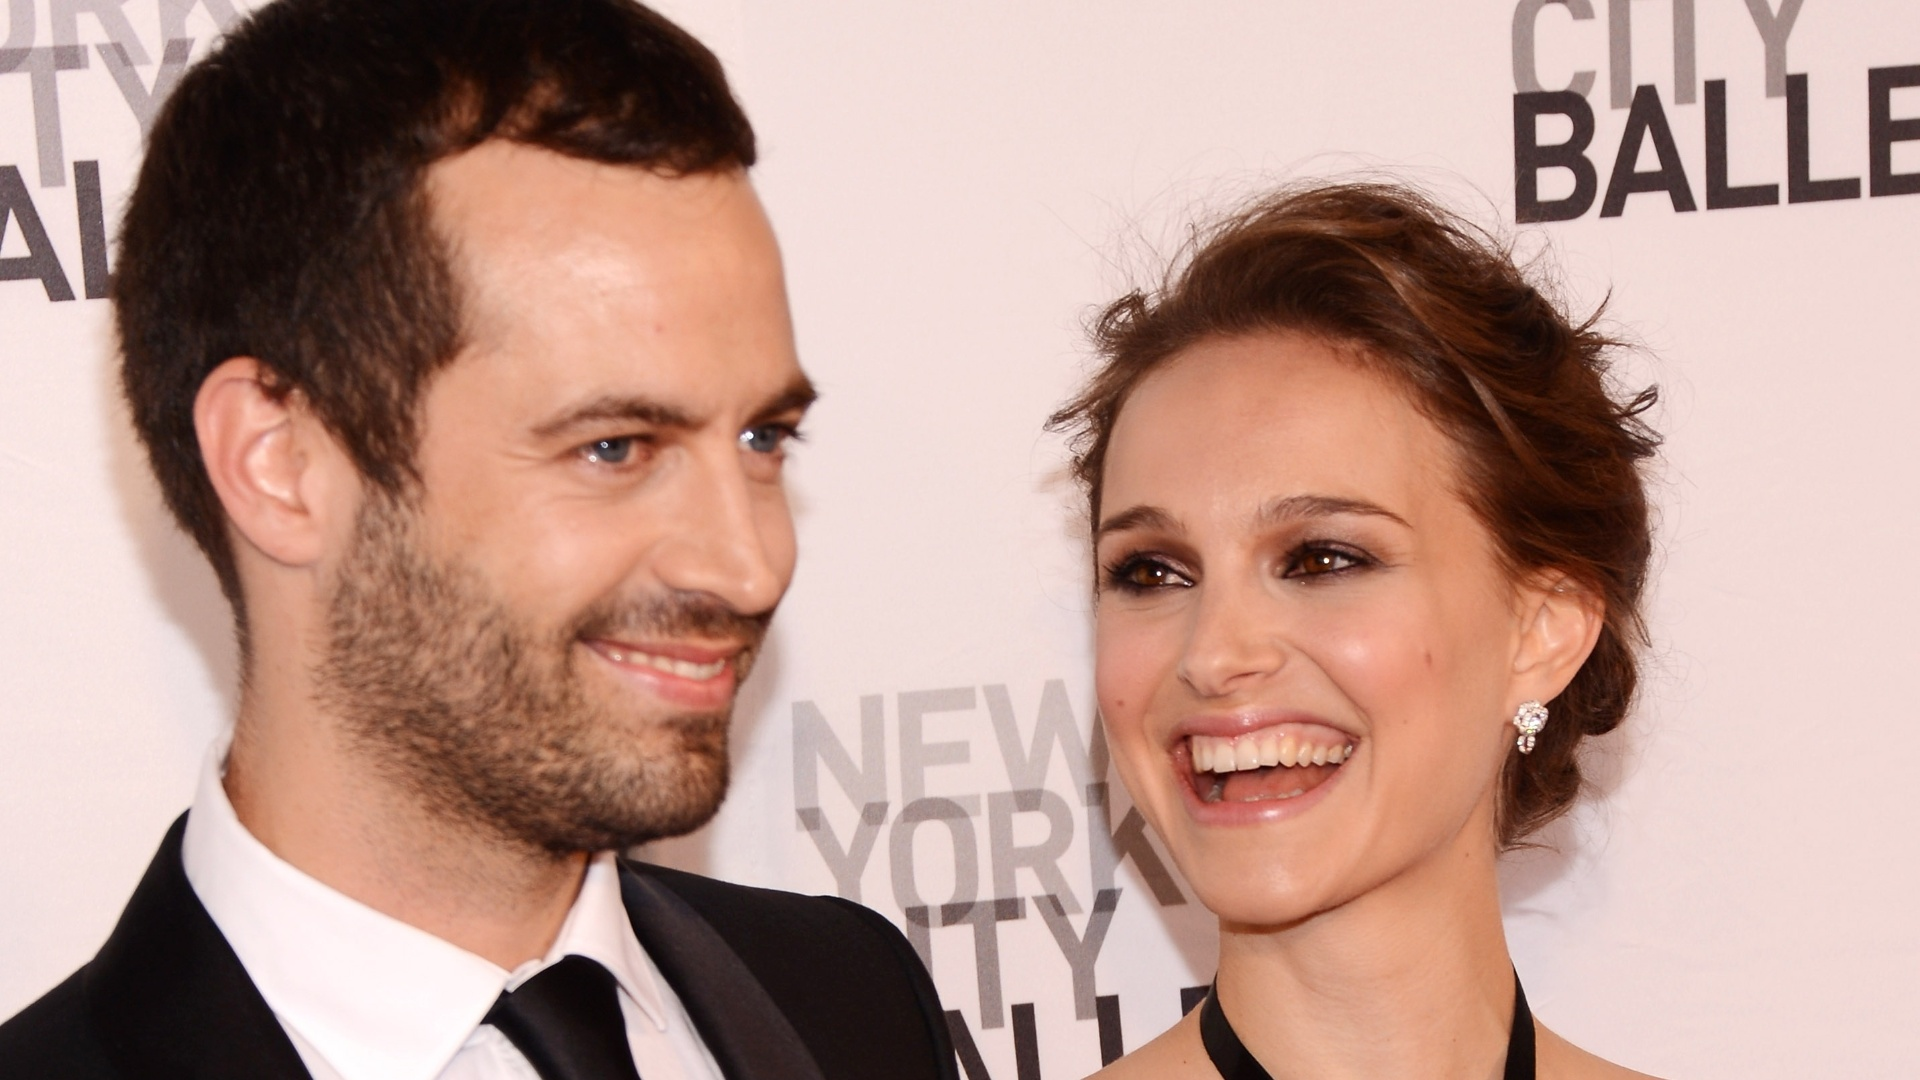 Natalie Portman e o noivo Benjamin Millepied vo a baile beneficente em Nova York (10/5/12)